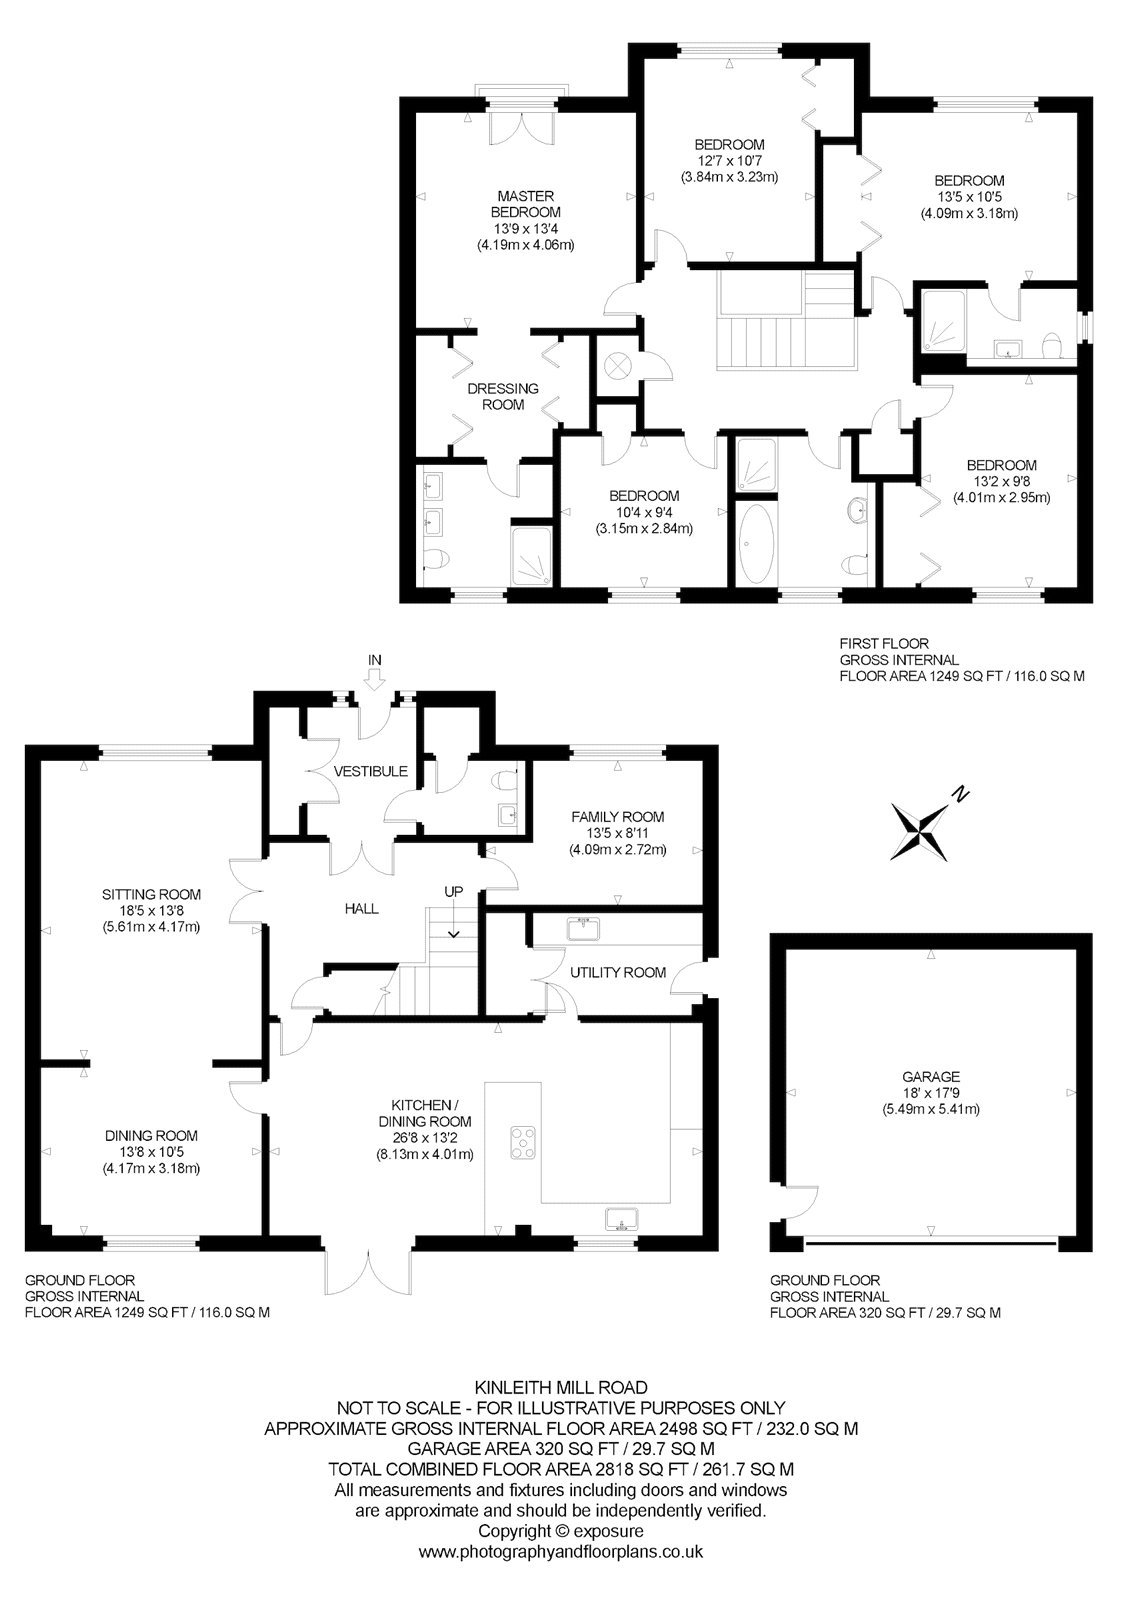 Floorplans for Kinleith Mill Road, Currie, Midlothian, EH14